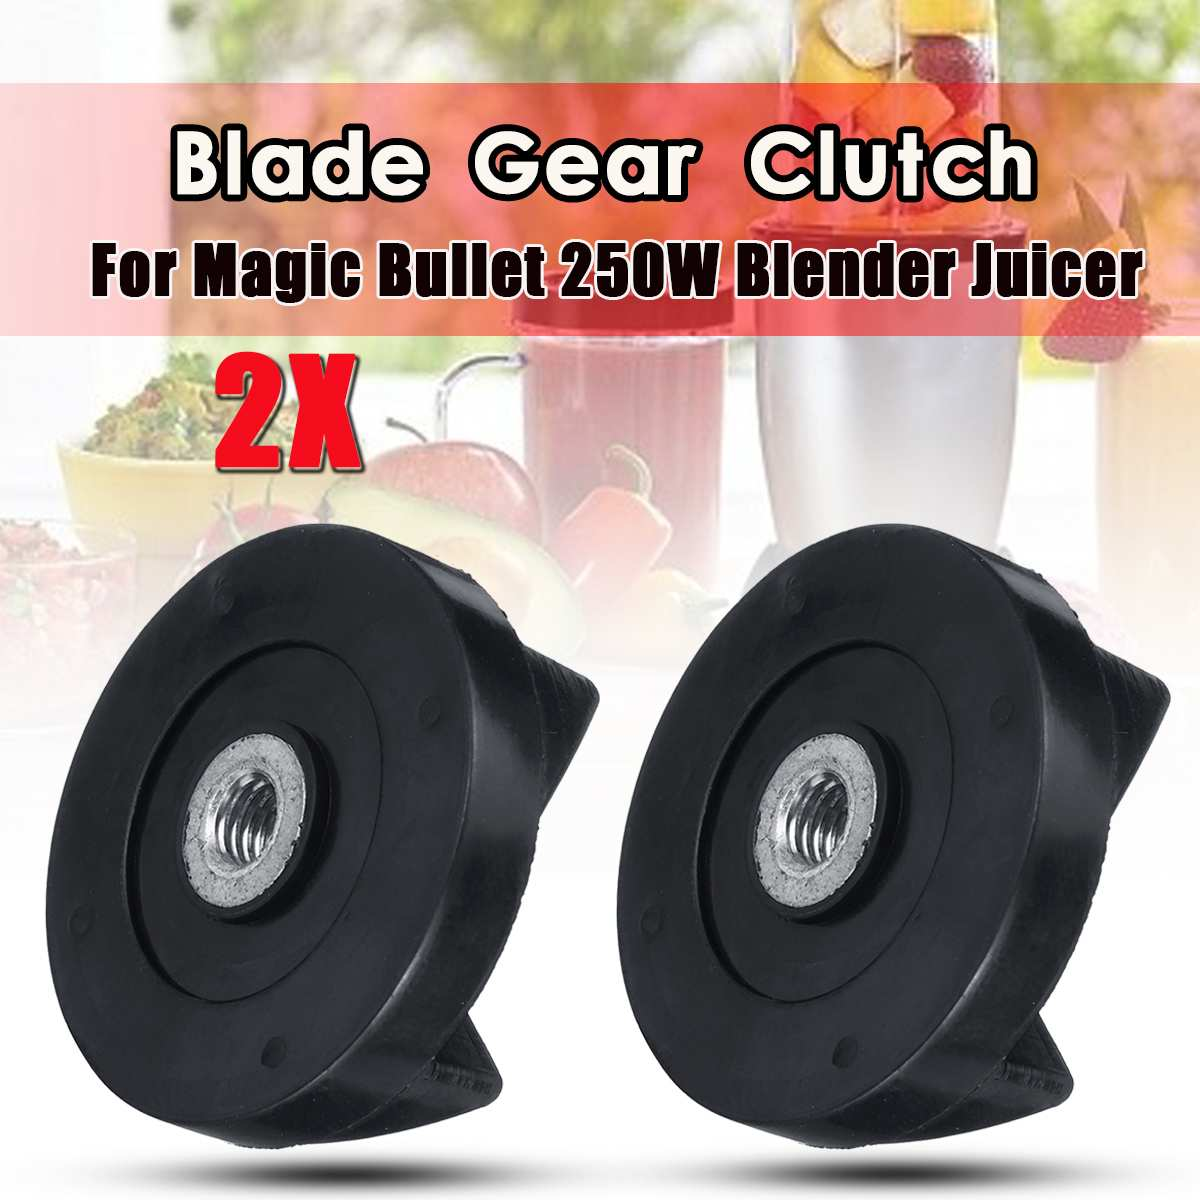 2pcs Juicer Blade Gear Clutch Replacement Black For Magic Bullet MB1001 250W2pcs Juicer Blade Gear Clutch Replacement Black For Magic Bullet MB1001 250W